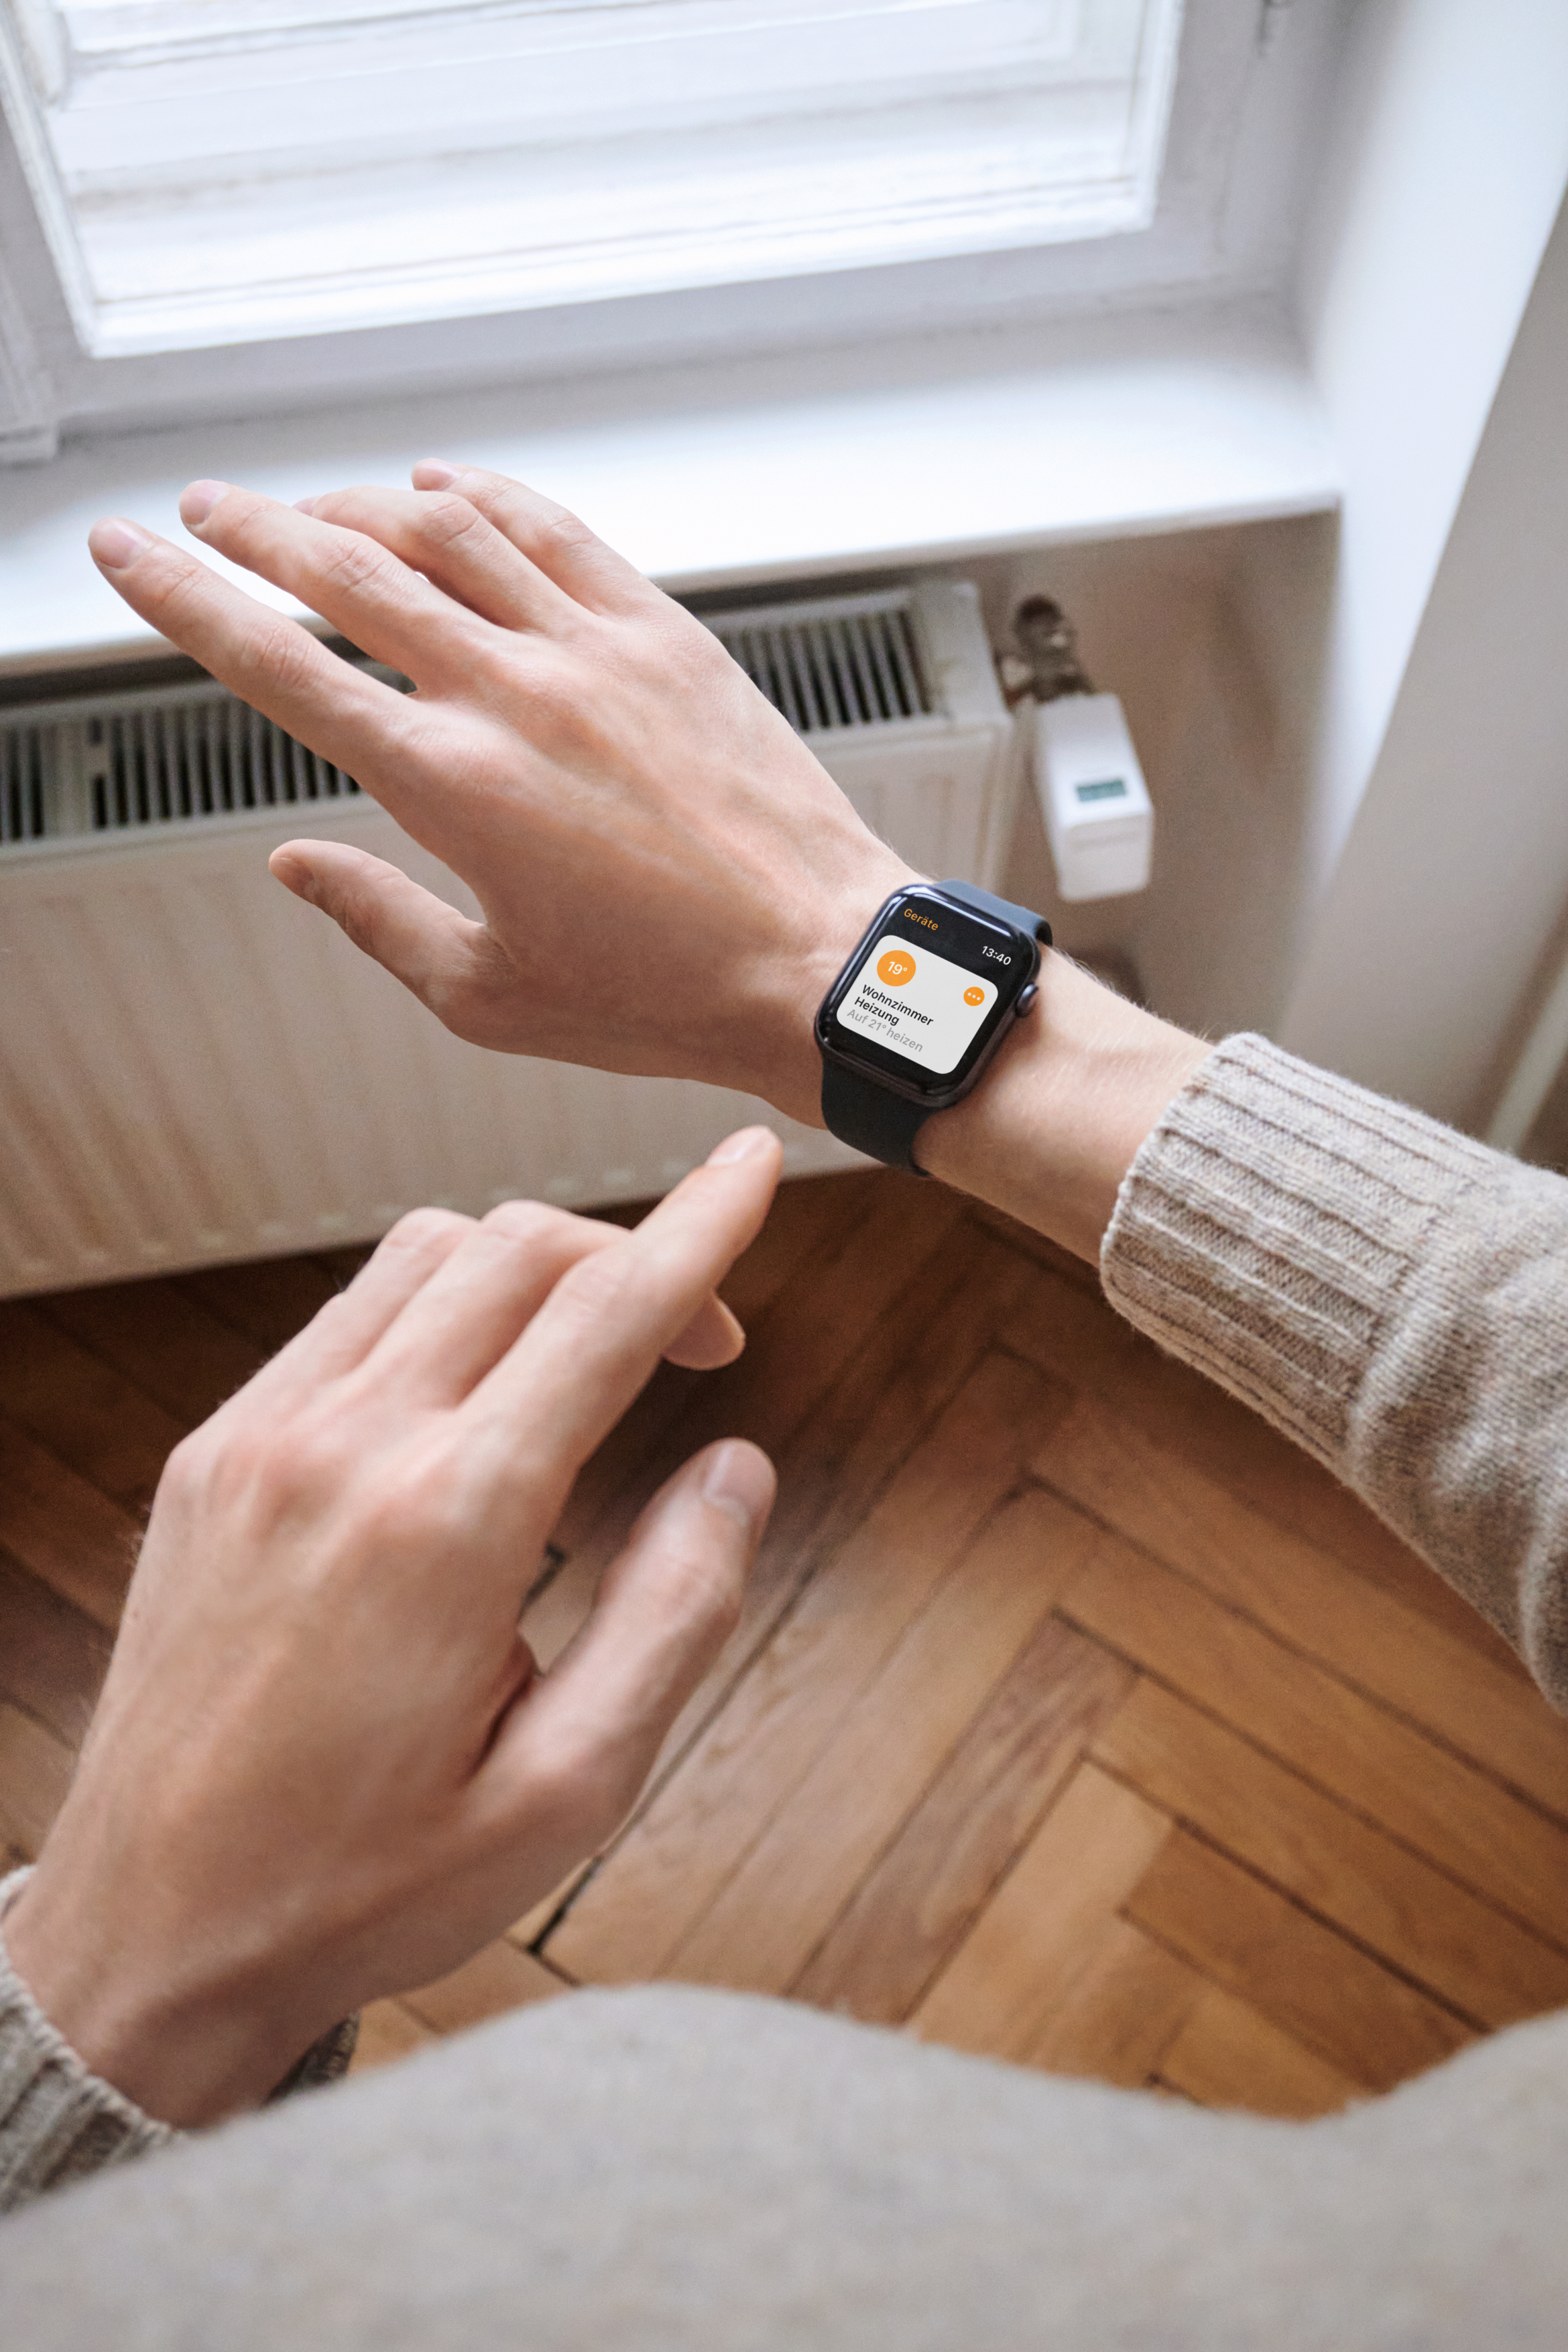 Bosch Smart Home steuerbar über Apple Watch